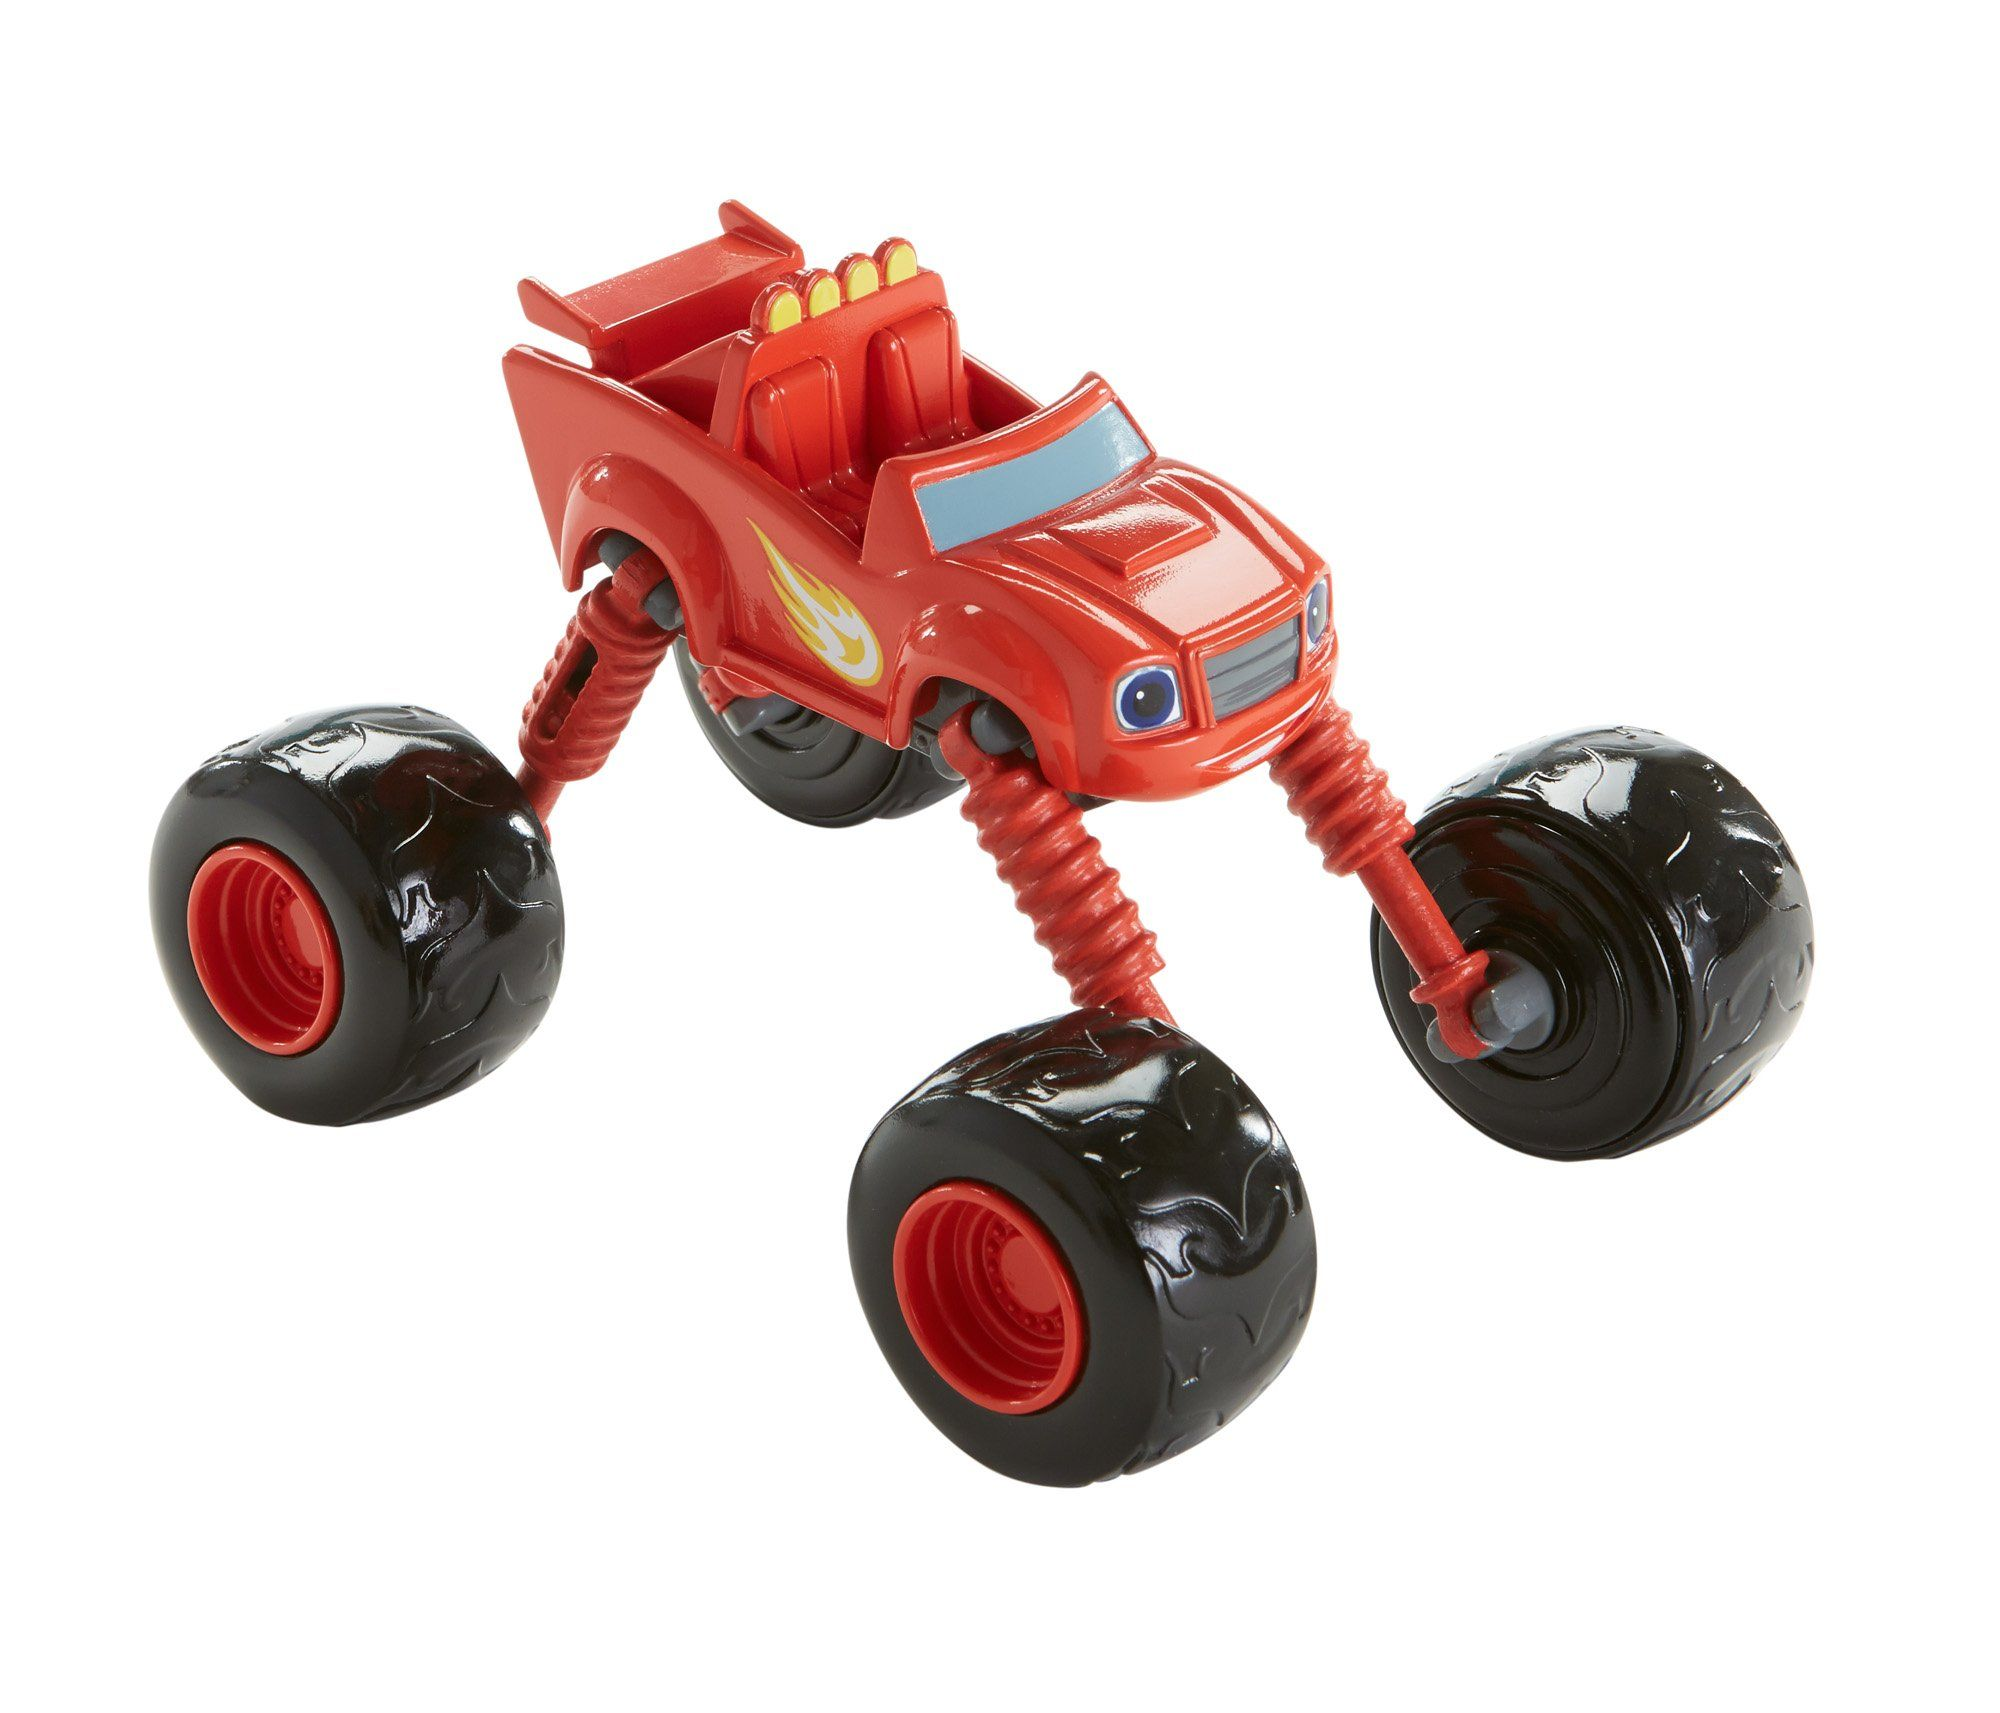 80s car toys  Blaze and the Monster Machines Transmorphers Blaze in vehicle